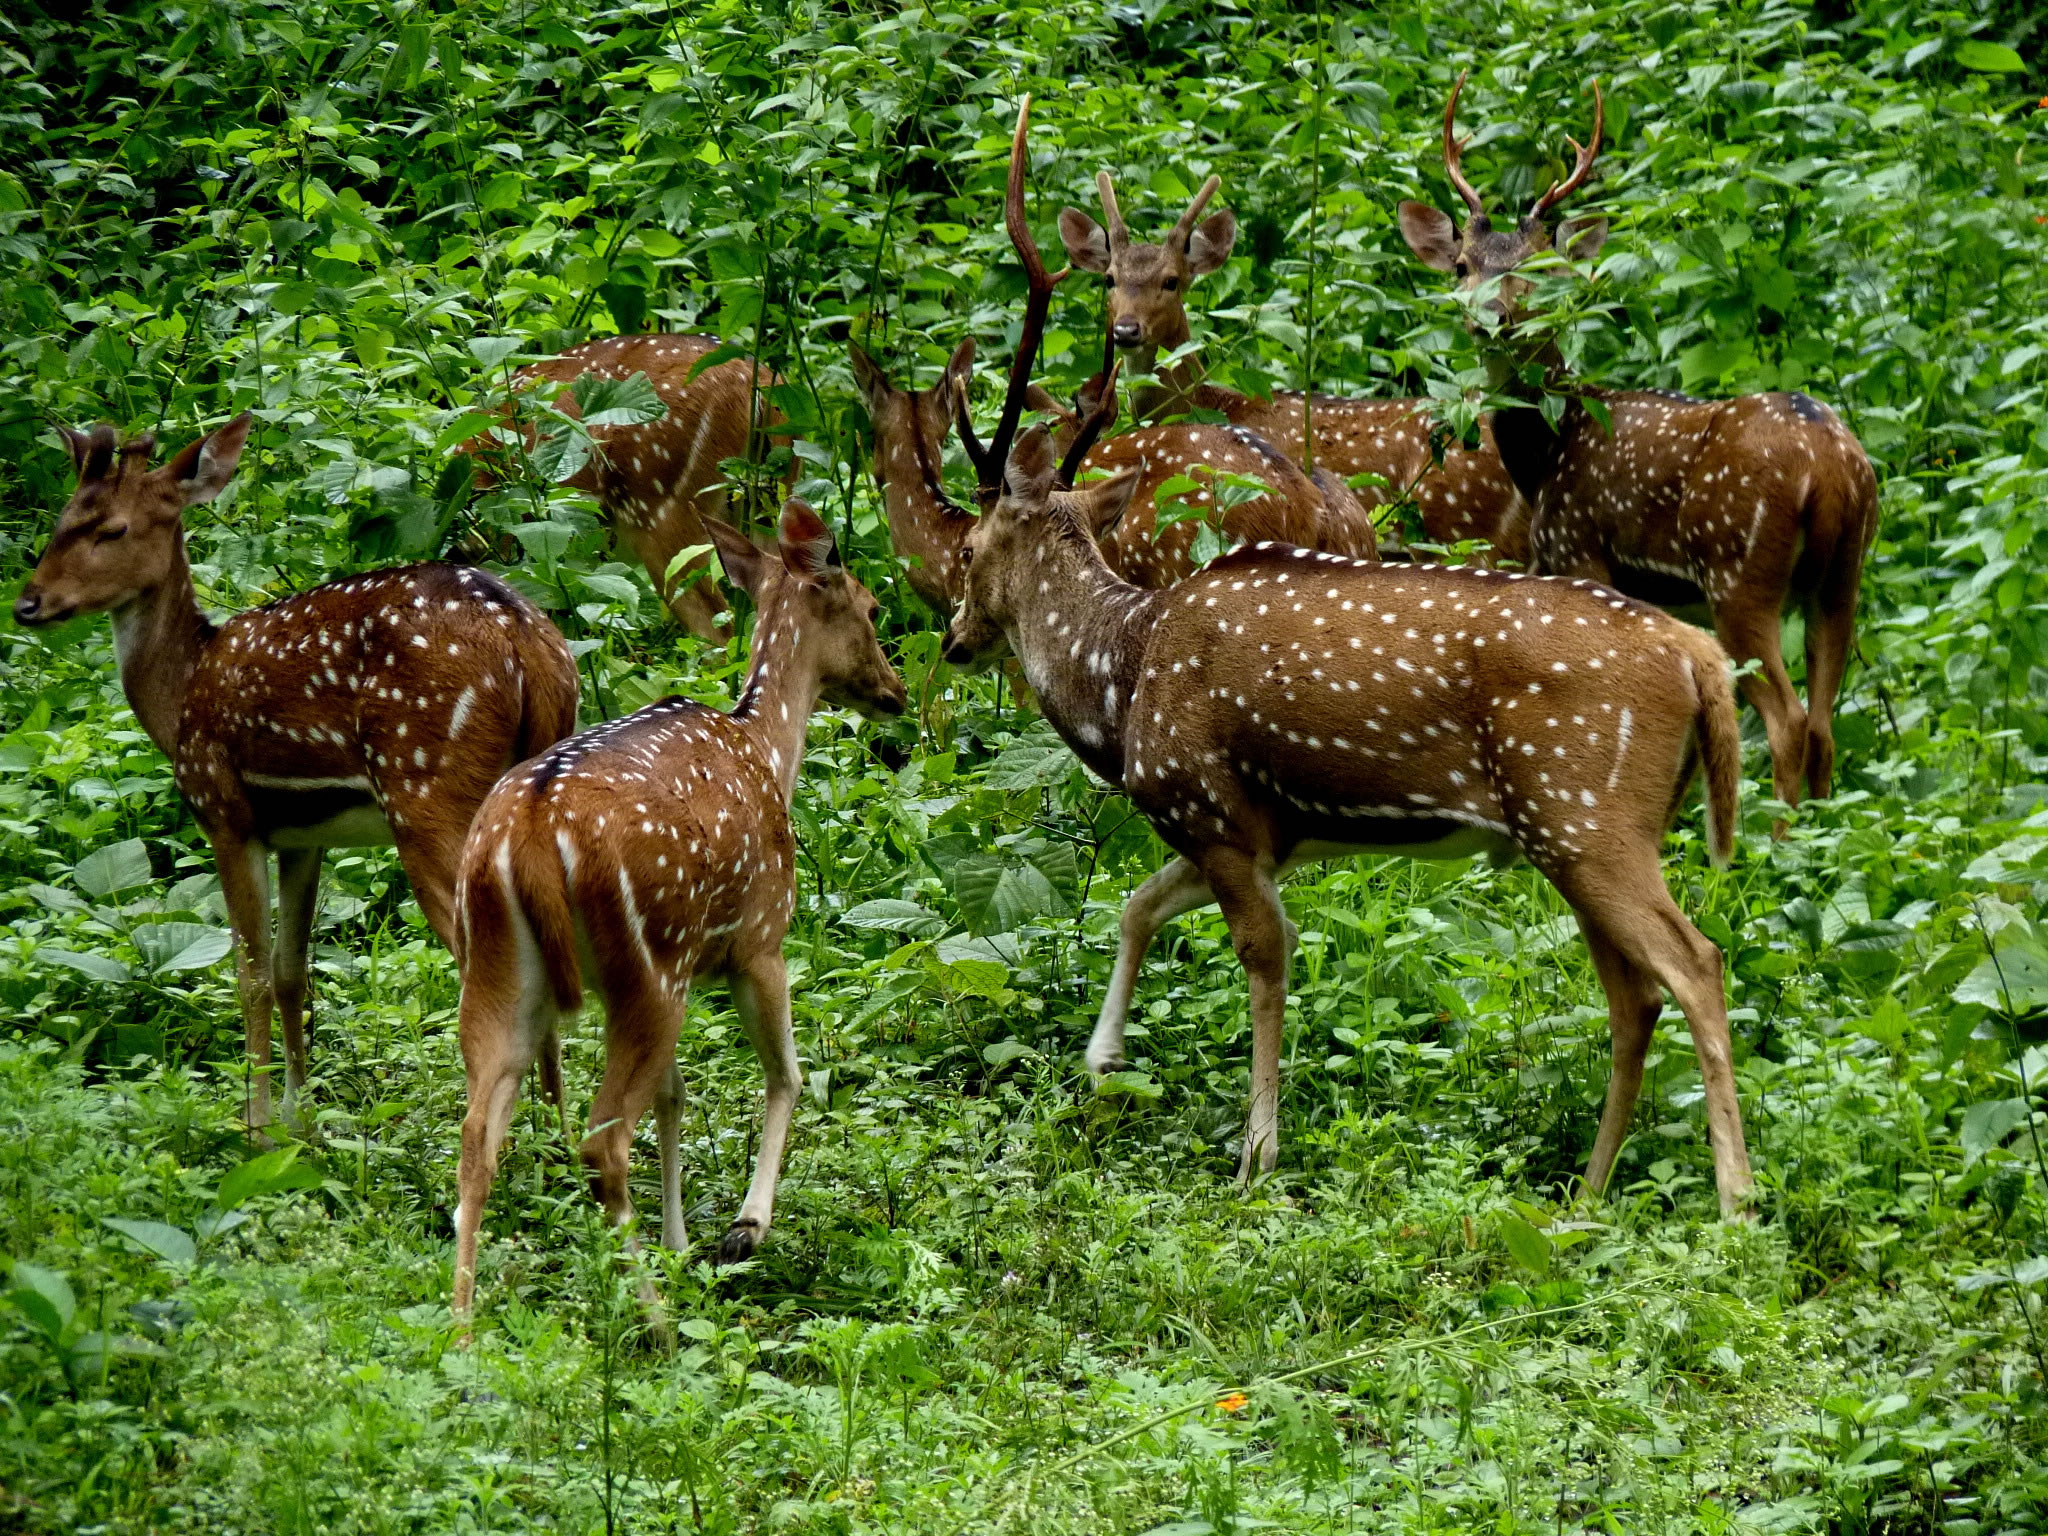 Herd of Deer in the Forest HD Wallpaper Background Image 2048x1536